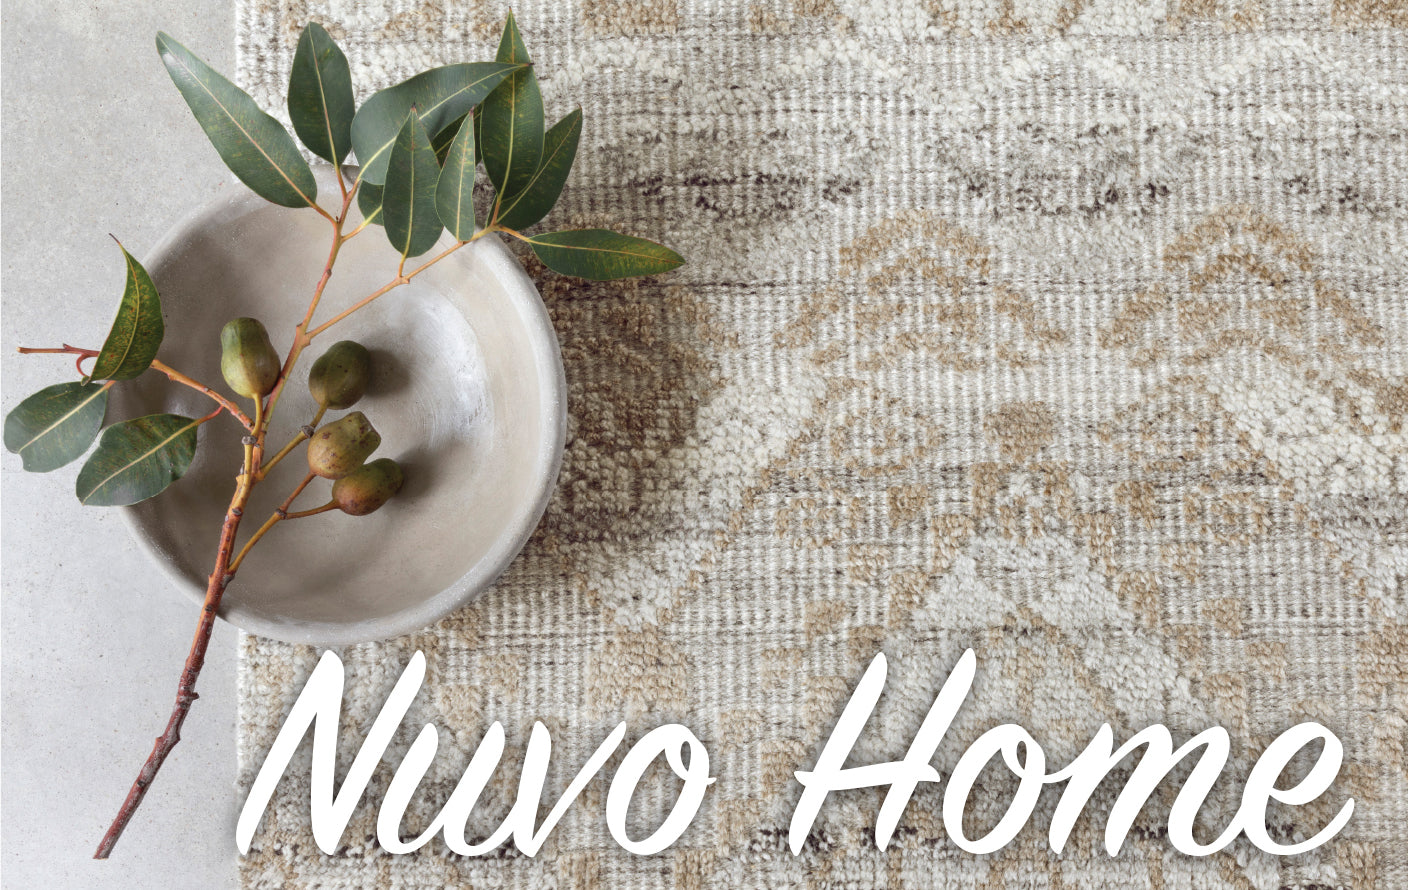 At home in Edmond - Nuvo Home, Tracee Strong